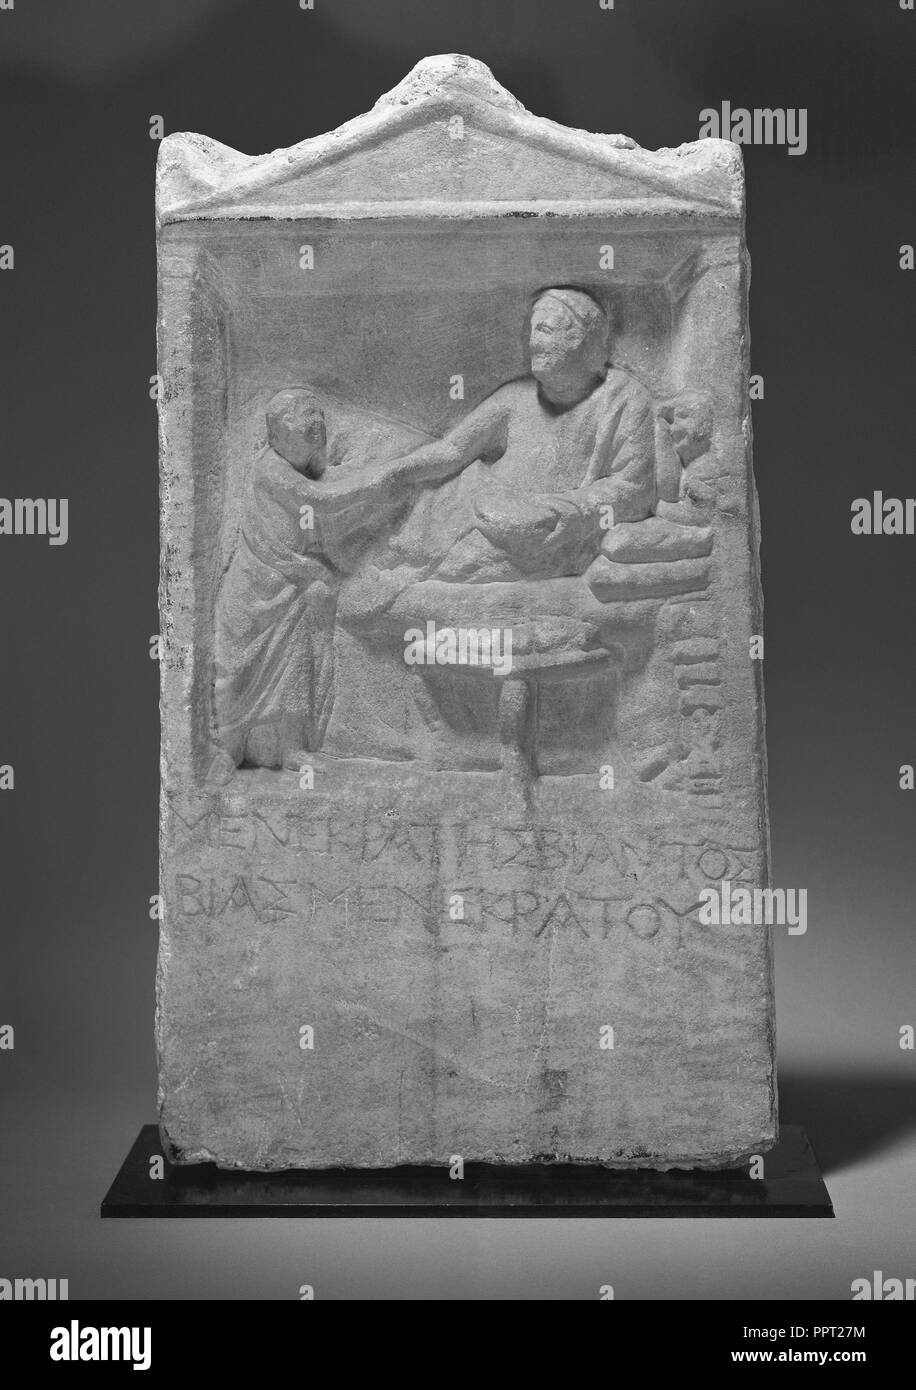 Grave Stele of Menekrates; Asia Minor; about 150 B.C; Marble; 55 × 30.5 × 6 cm, 21 5,8 × 12 × 2 3,8 in - Stock Image